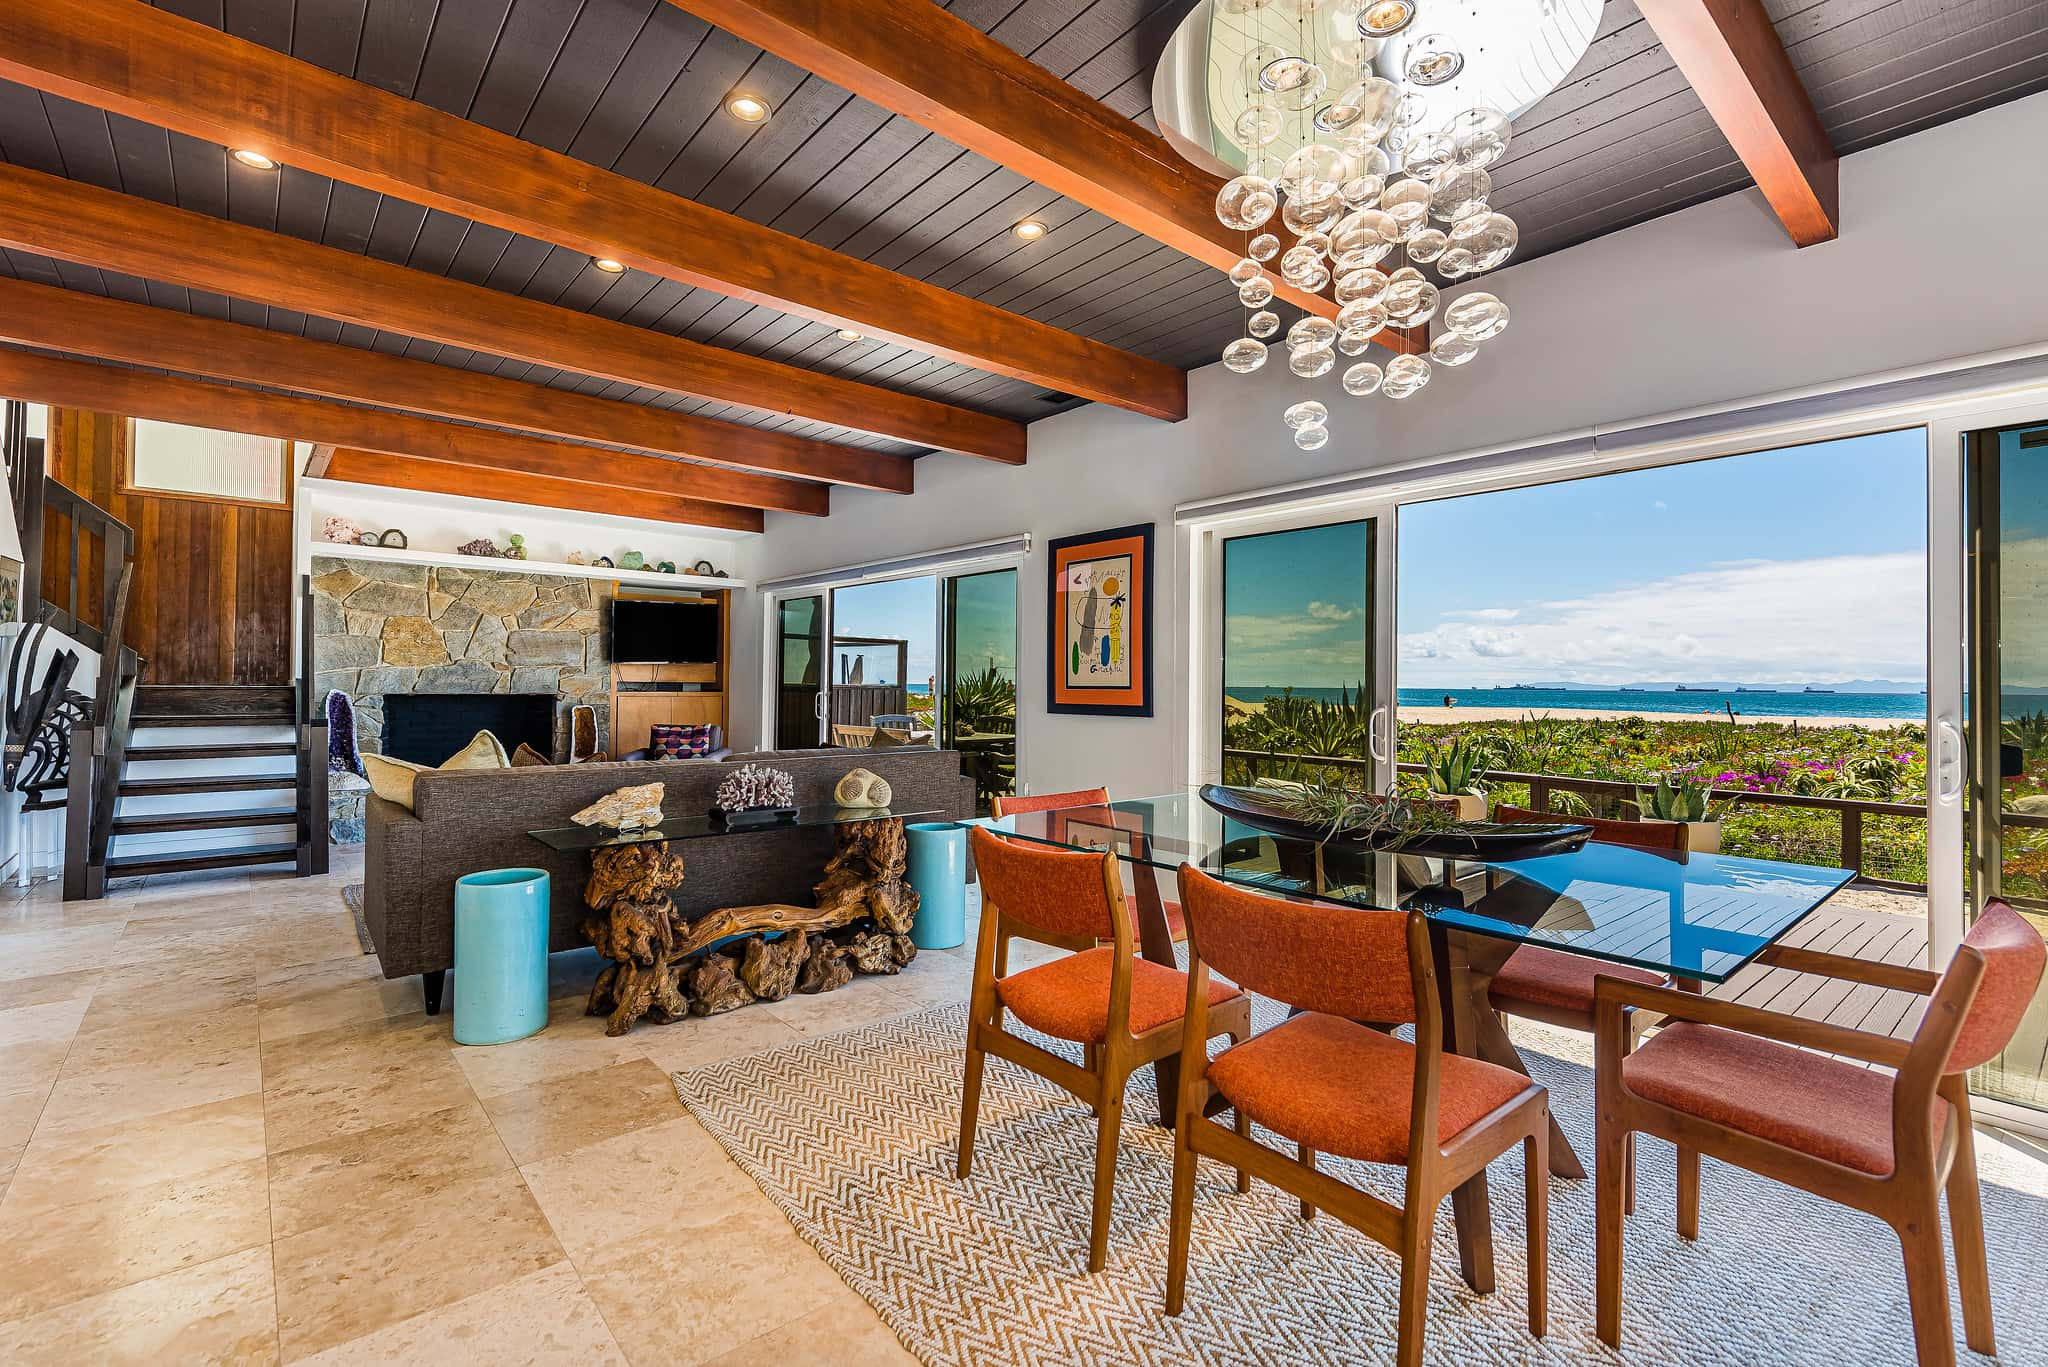 Mid-century modern living room and dining room with sliding doors opening to patio and wood beamed ceilings.